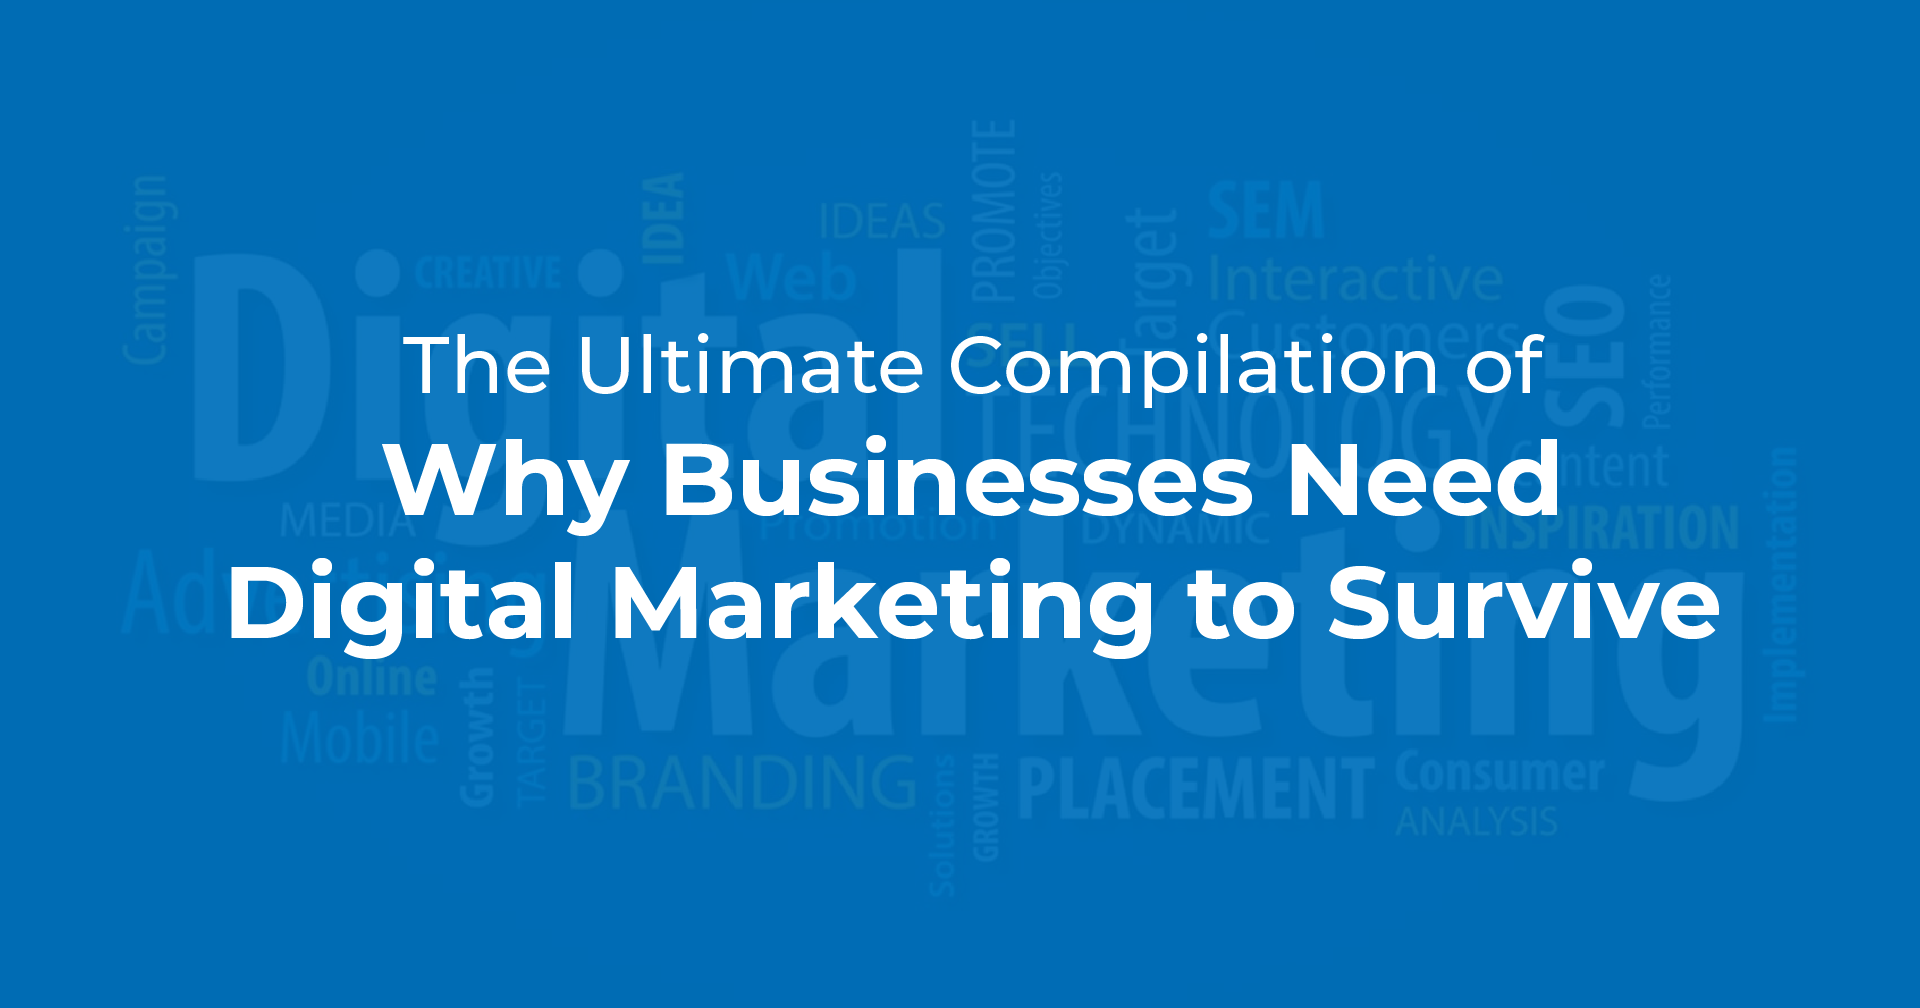 The Ultimate Compilation of Why Businesses Need Digital Marketing to Survive